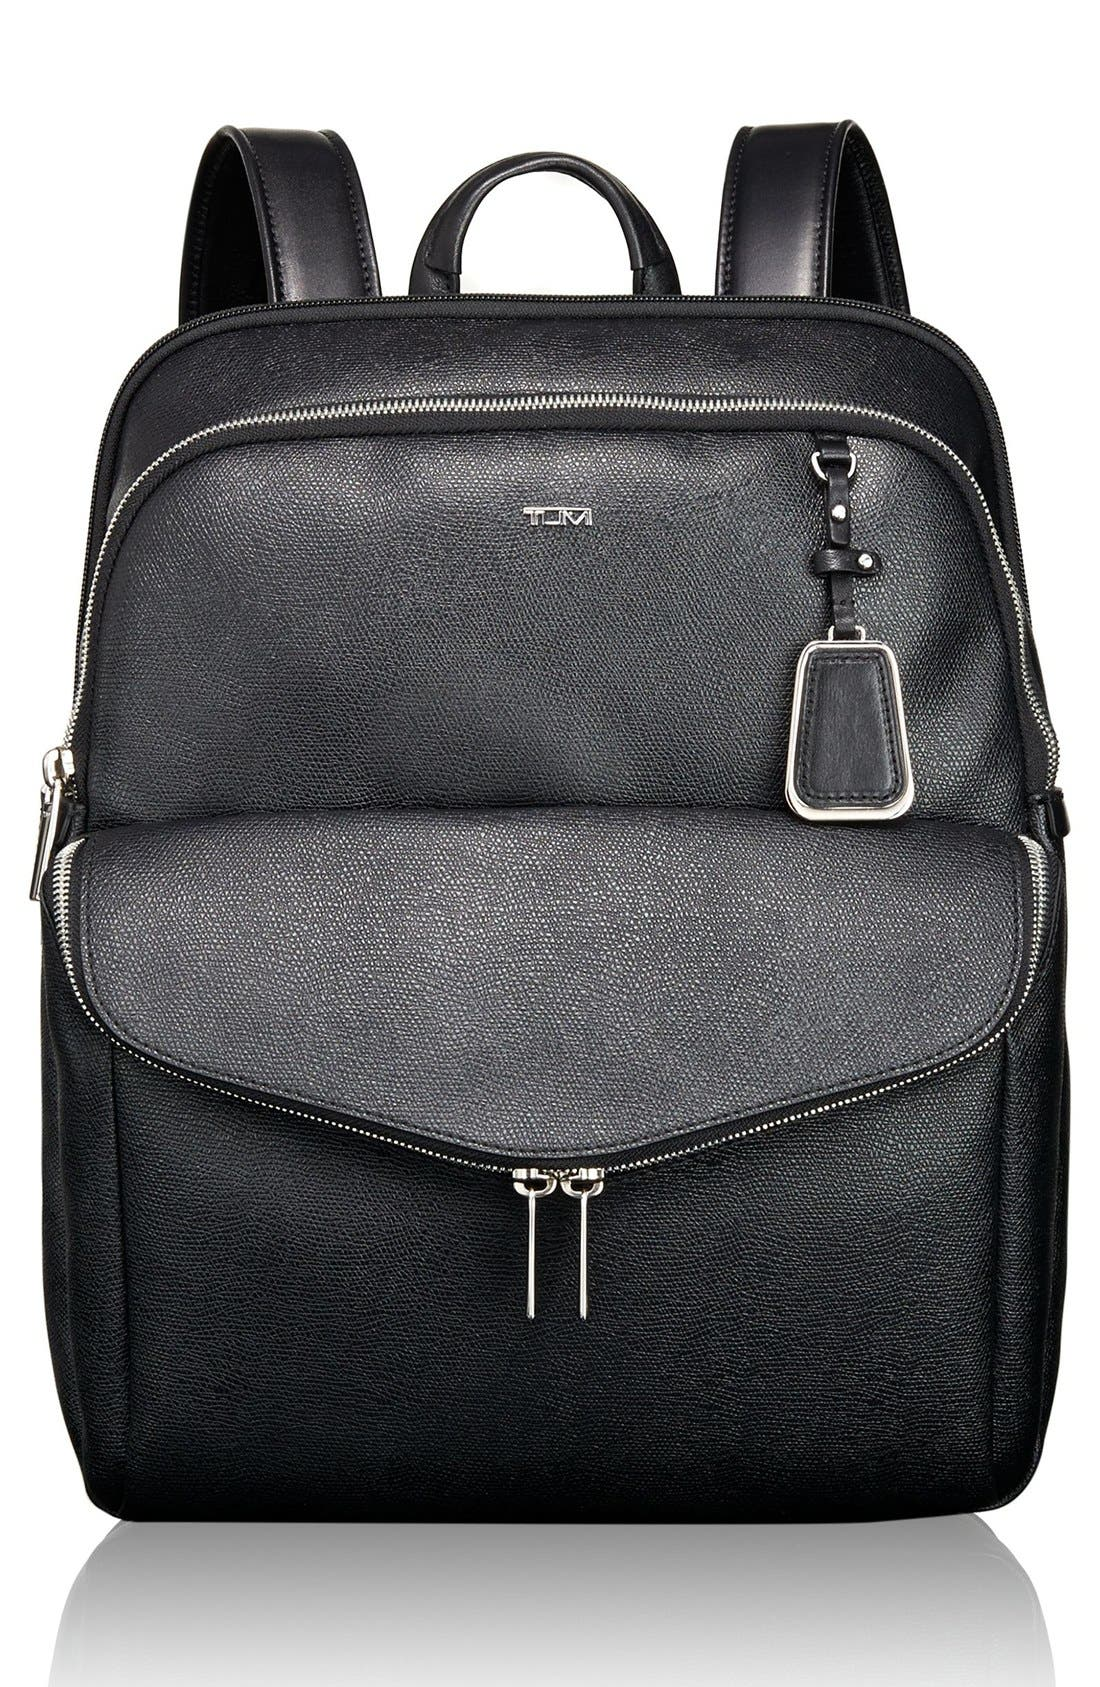 'Sinclair Harlow' Coated Canvas Laptop Backpack, Main, color, 002